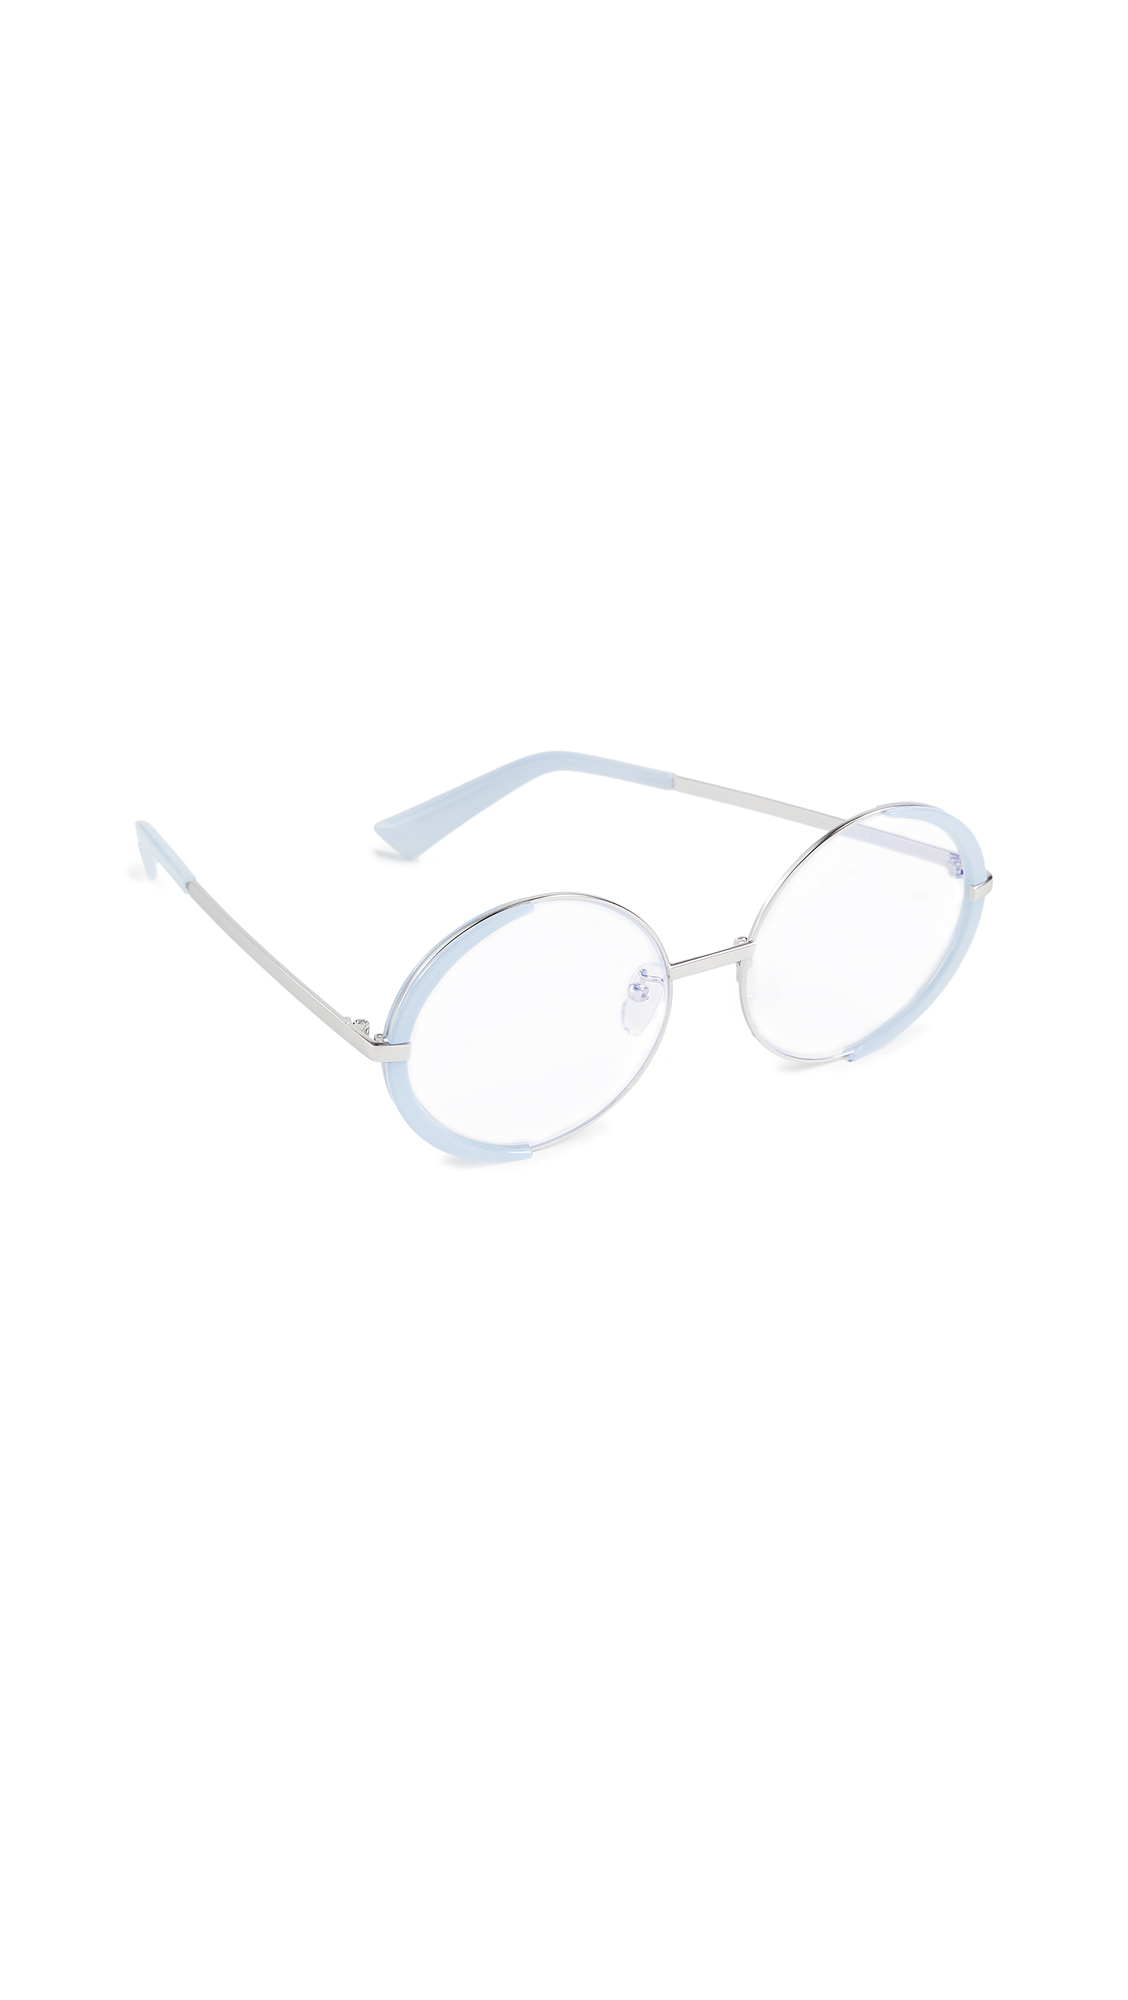 THE BOOK CLUB Surround The World Glasses in Lilac/Silver